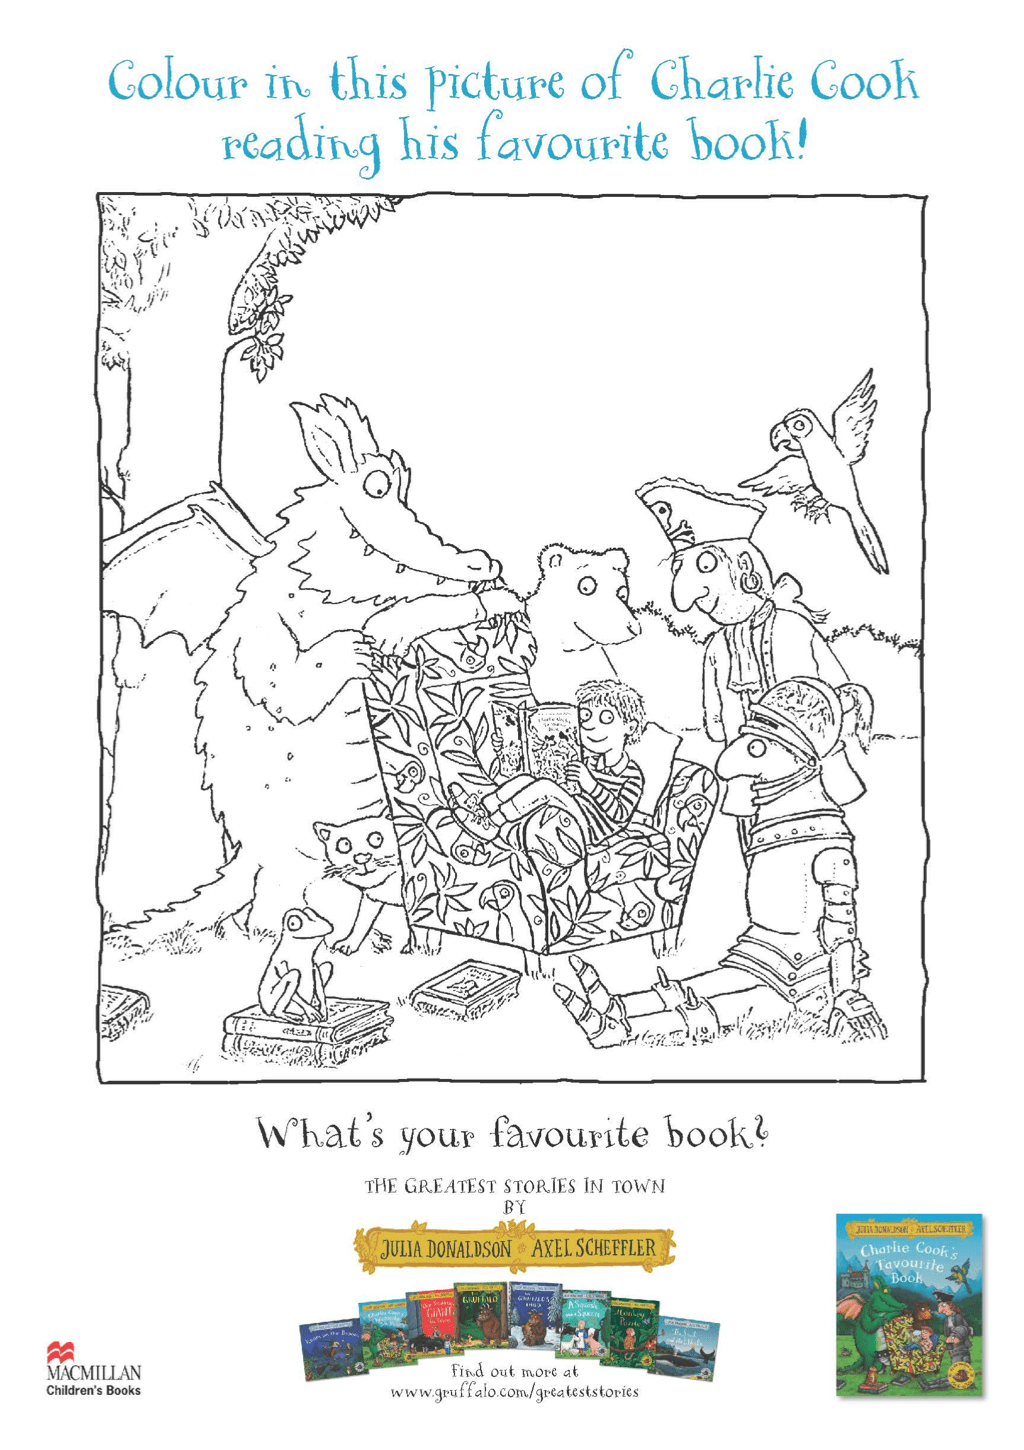 colouring sheet - Charlie Cook's Favourite Book